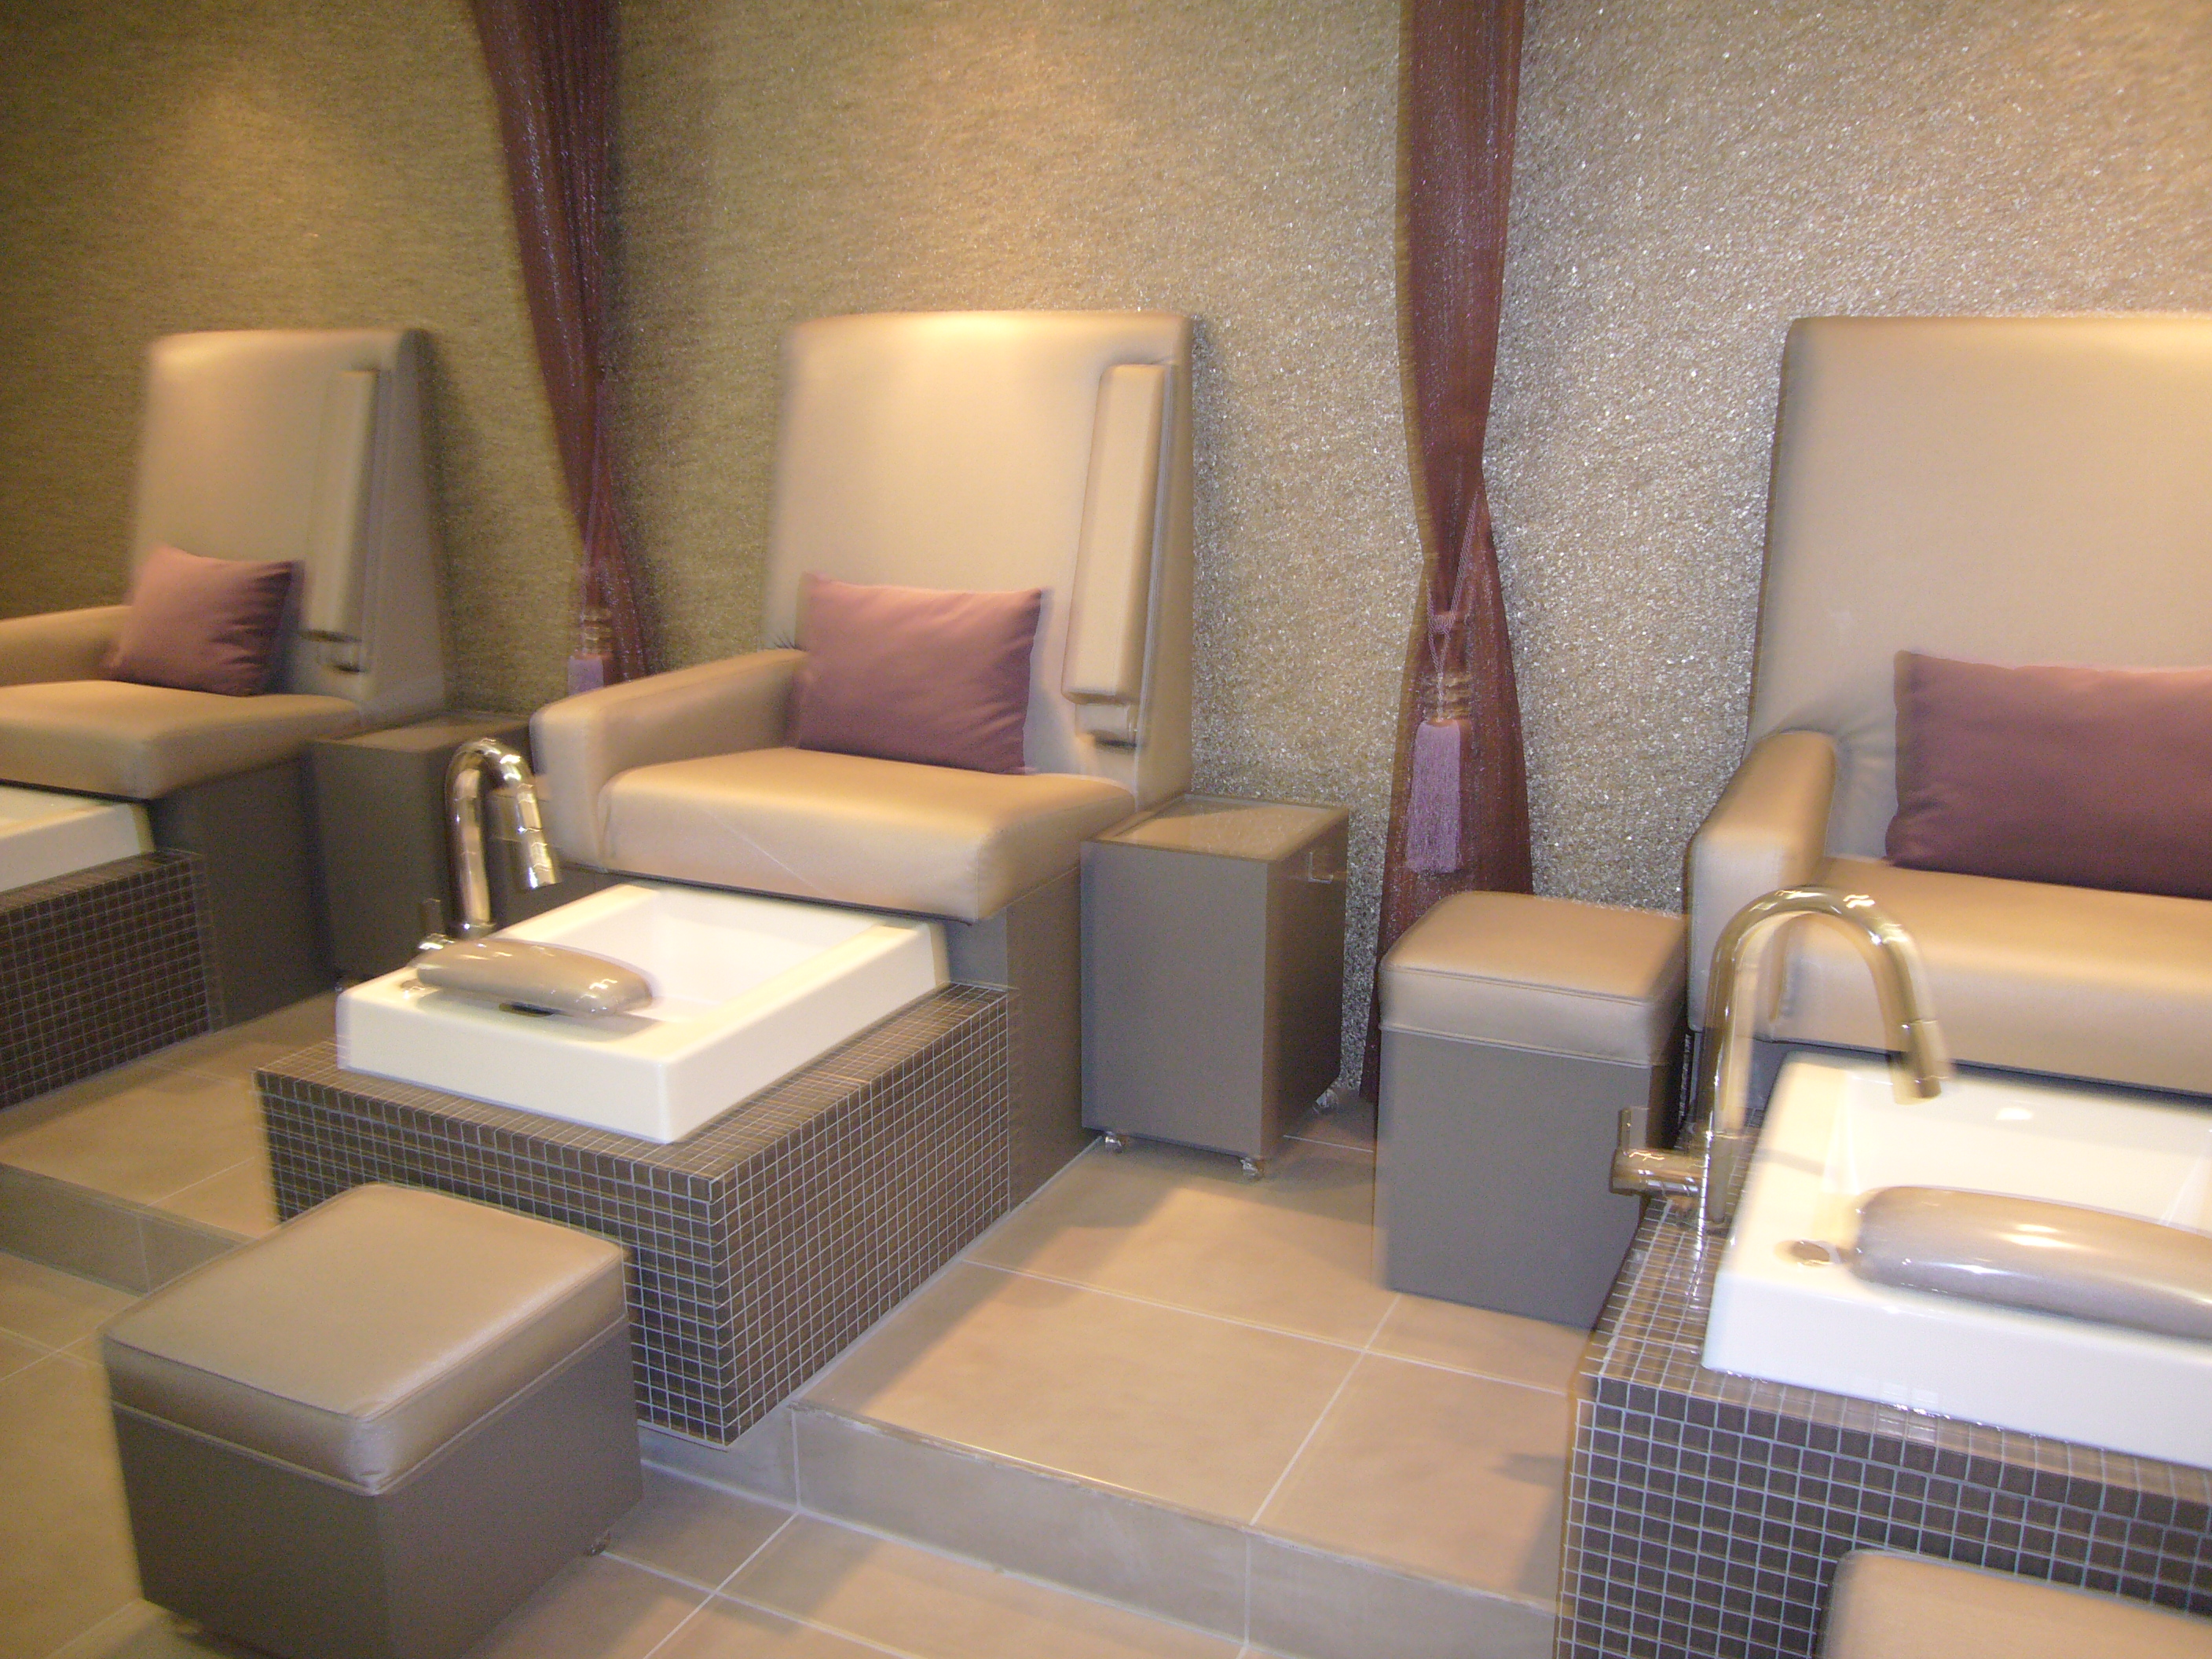 Pedicure chair dimensions - Our Custom Made Spa Pedicure Chairs